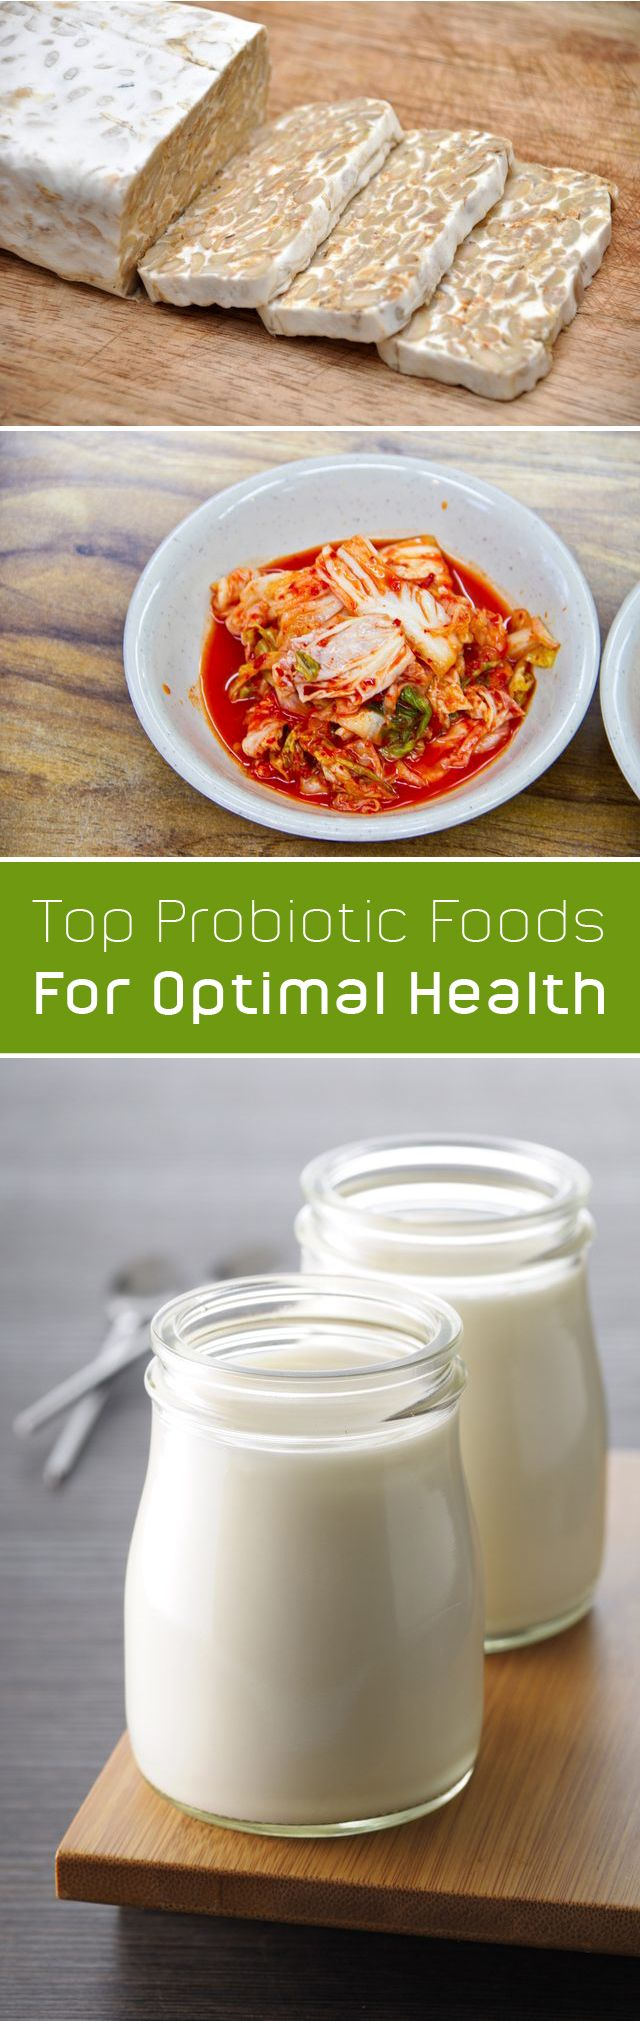 Probiotics populate your digestive tract and offer a ton of health benefits! Probiotics are great for keeping your digestive tract healthy, from preventing food-borne illness to lowering your risk of certain digestive conditions, like IBS. They might even help reduce inflammation and lower the risk of obesity. More info here: http://www.ehow.com/how_2067748_eat-probiotics-health.html?utm_source=pinterest.com&utm_medium=referral&utm_content=freestyle&utm_campaign=fanpage